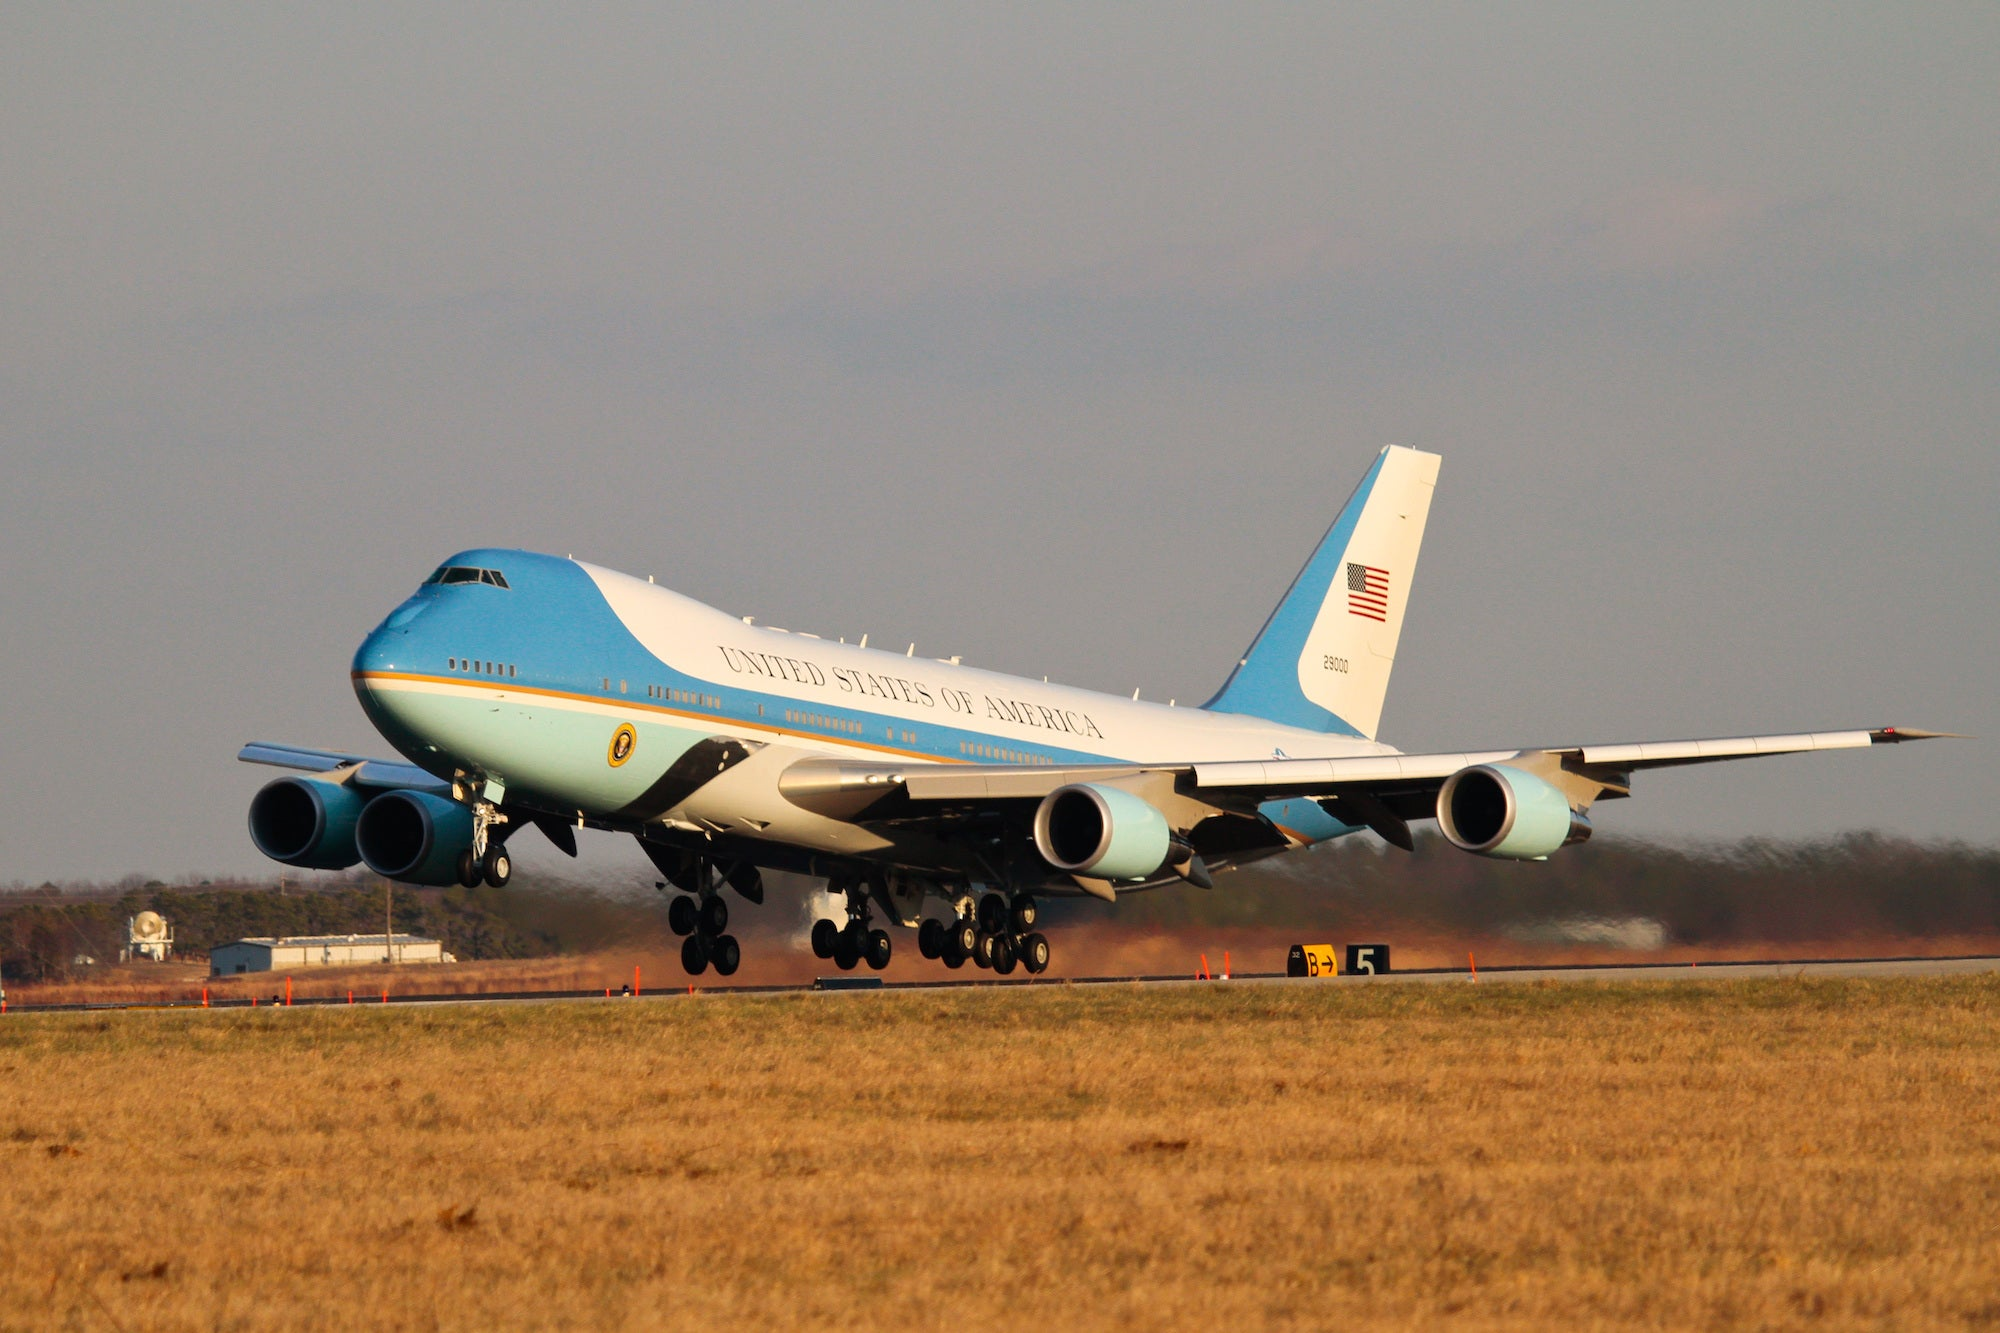 Air Force One does a practice landing and take off.